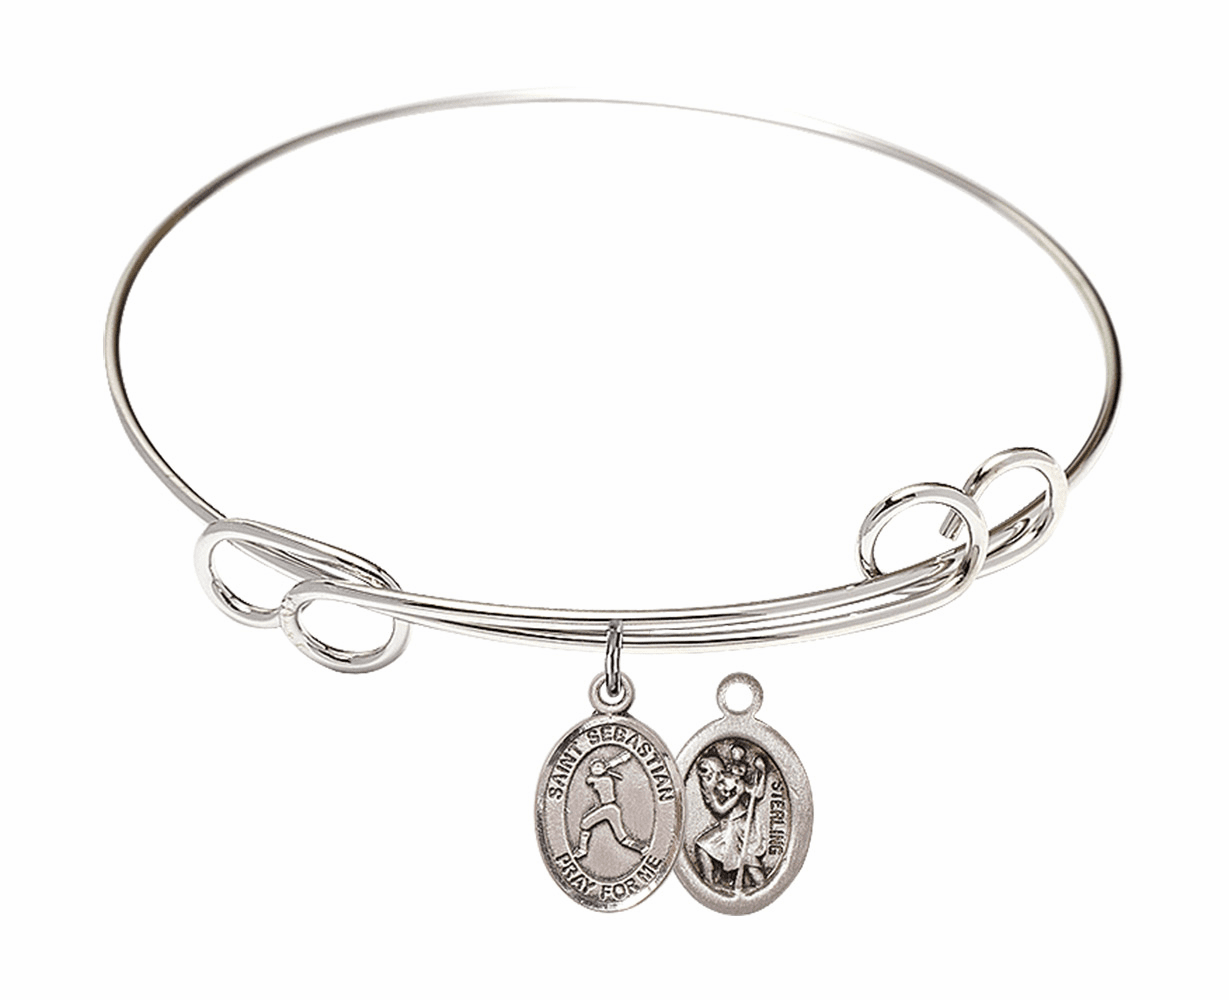 Round Loop St Sebastian Softball Bangle Charm Bracelet by Bliss